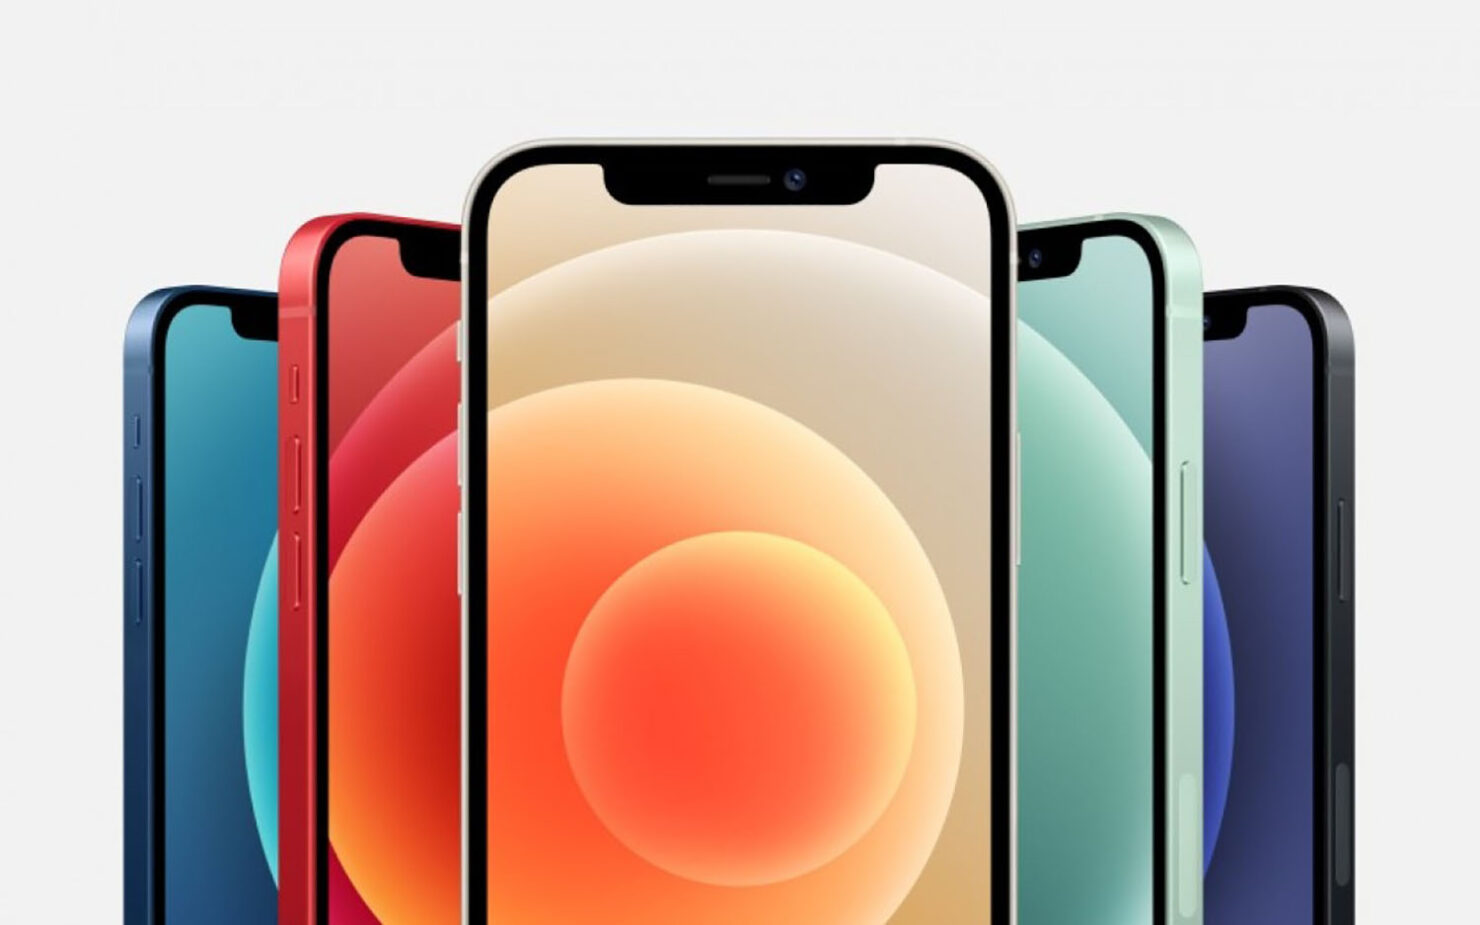 iPhone 12 Lineup Accounted for 56 Percent of All iPhone Sales in the U.S. For Q1, 2021